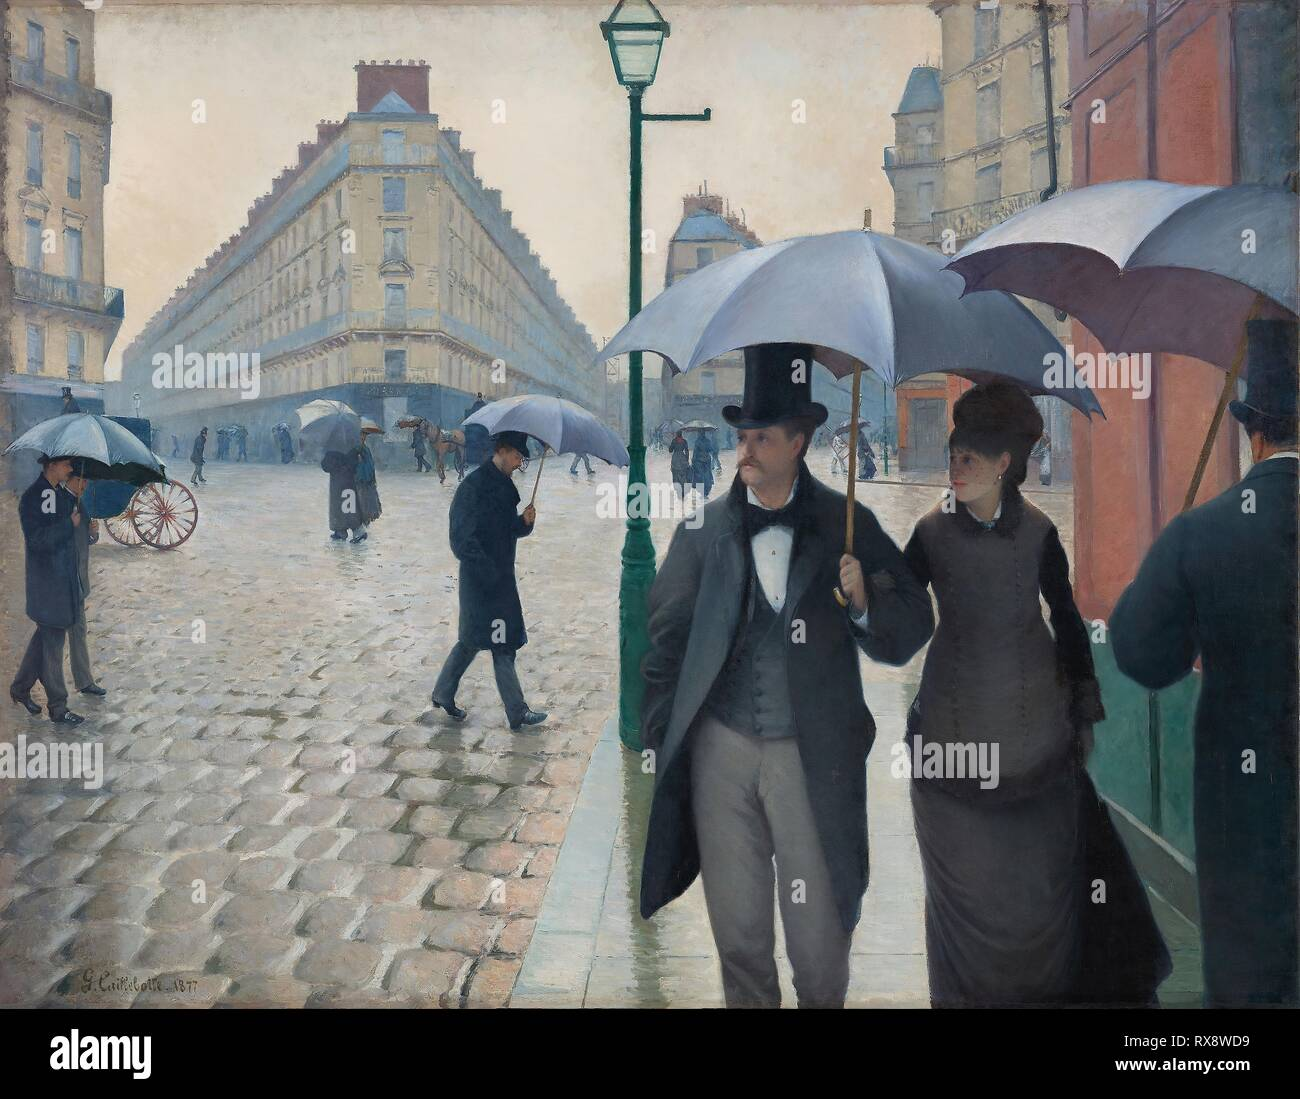 Paris Street; Rainy Day. Gustave Caillebotte; (French, 1848-1894). Date: 1877. Dimensions: 212.2 × 276.2 cm (83 1/2 × 108 3/4 in.). Oil on canvas. Origin: Paris. Museum: The Chicago Art Institute. - Stock Image